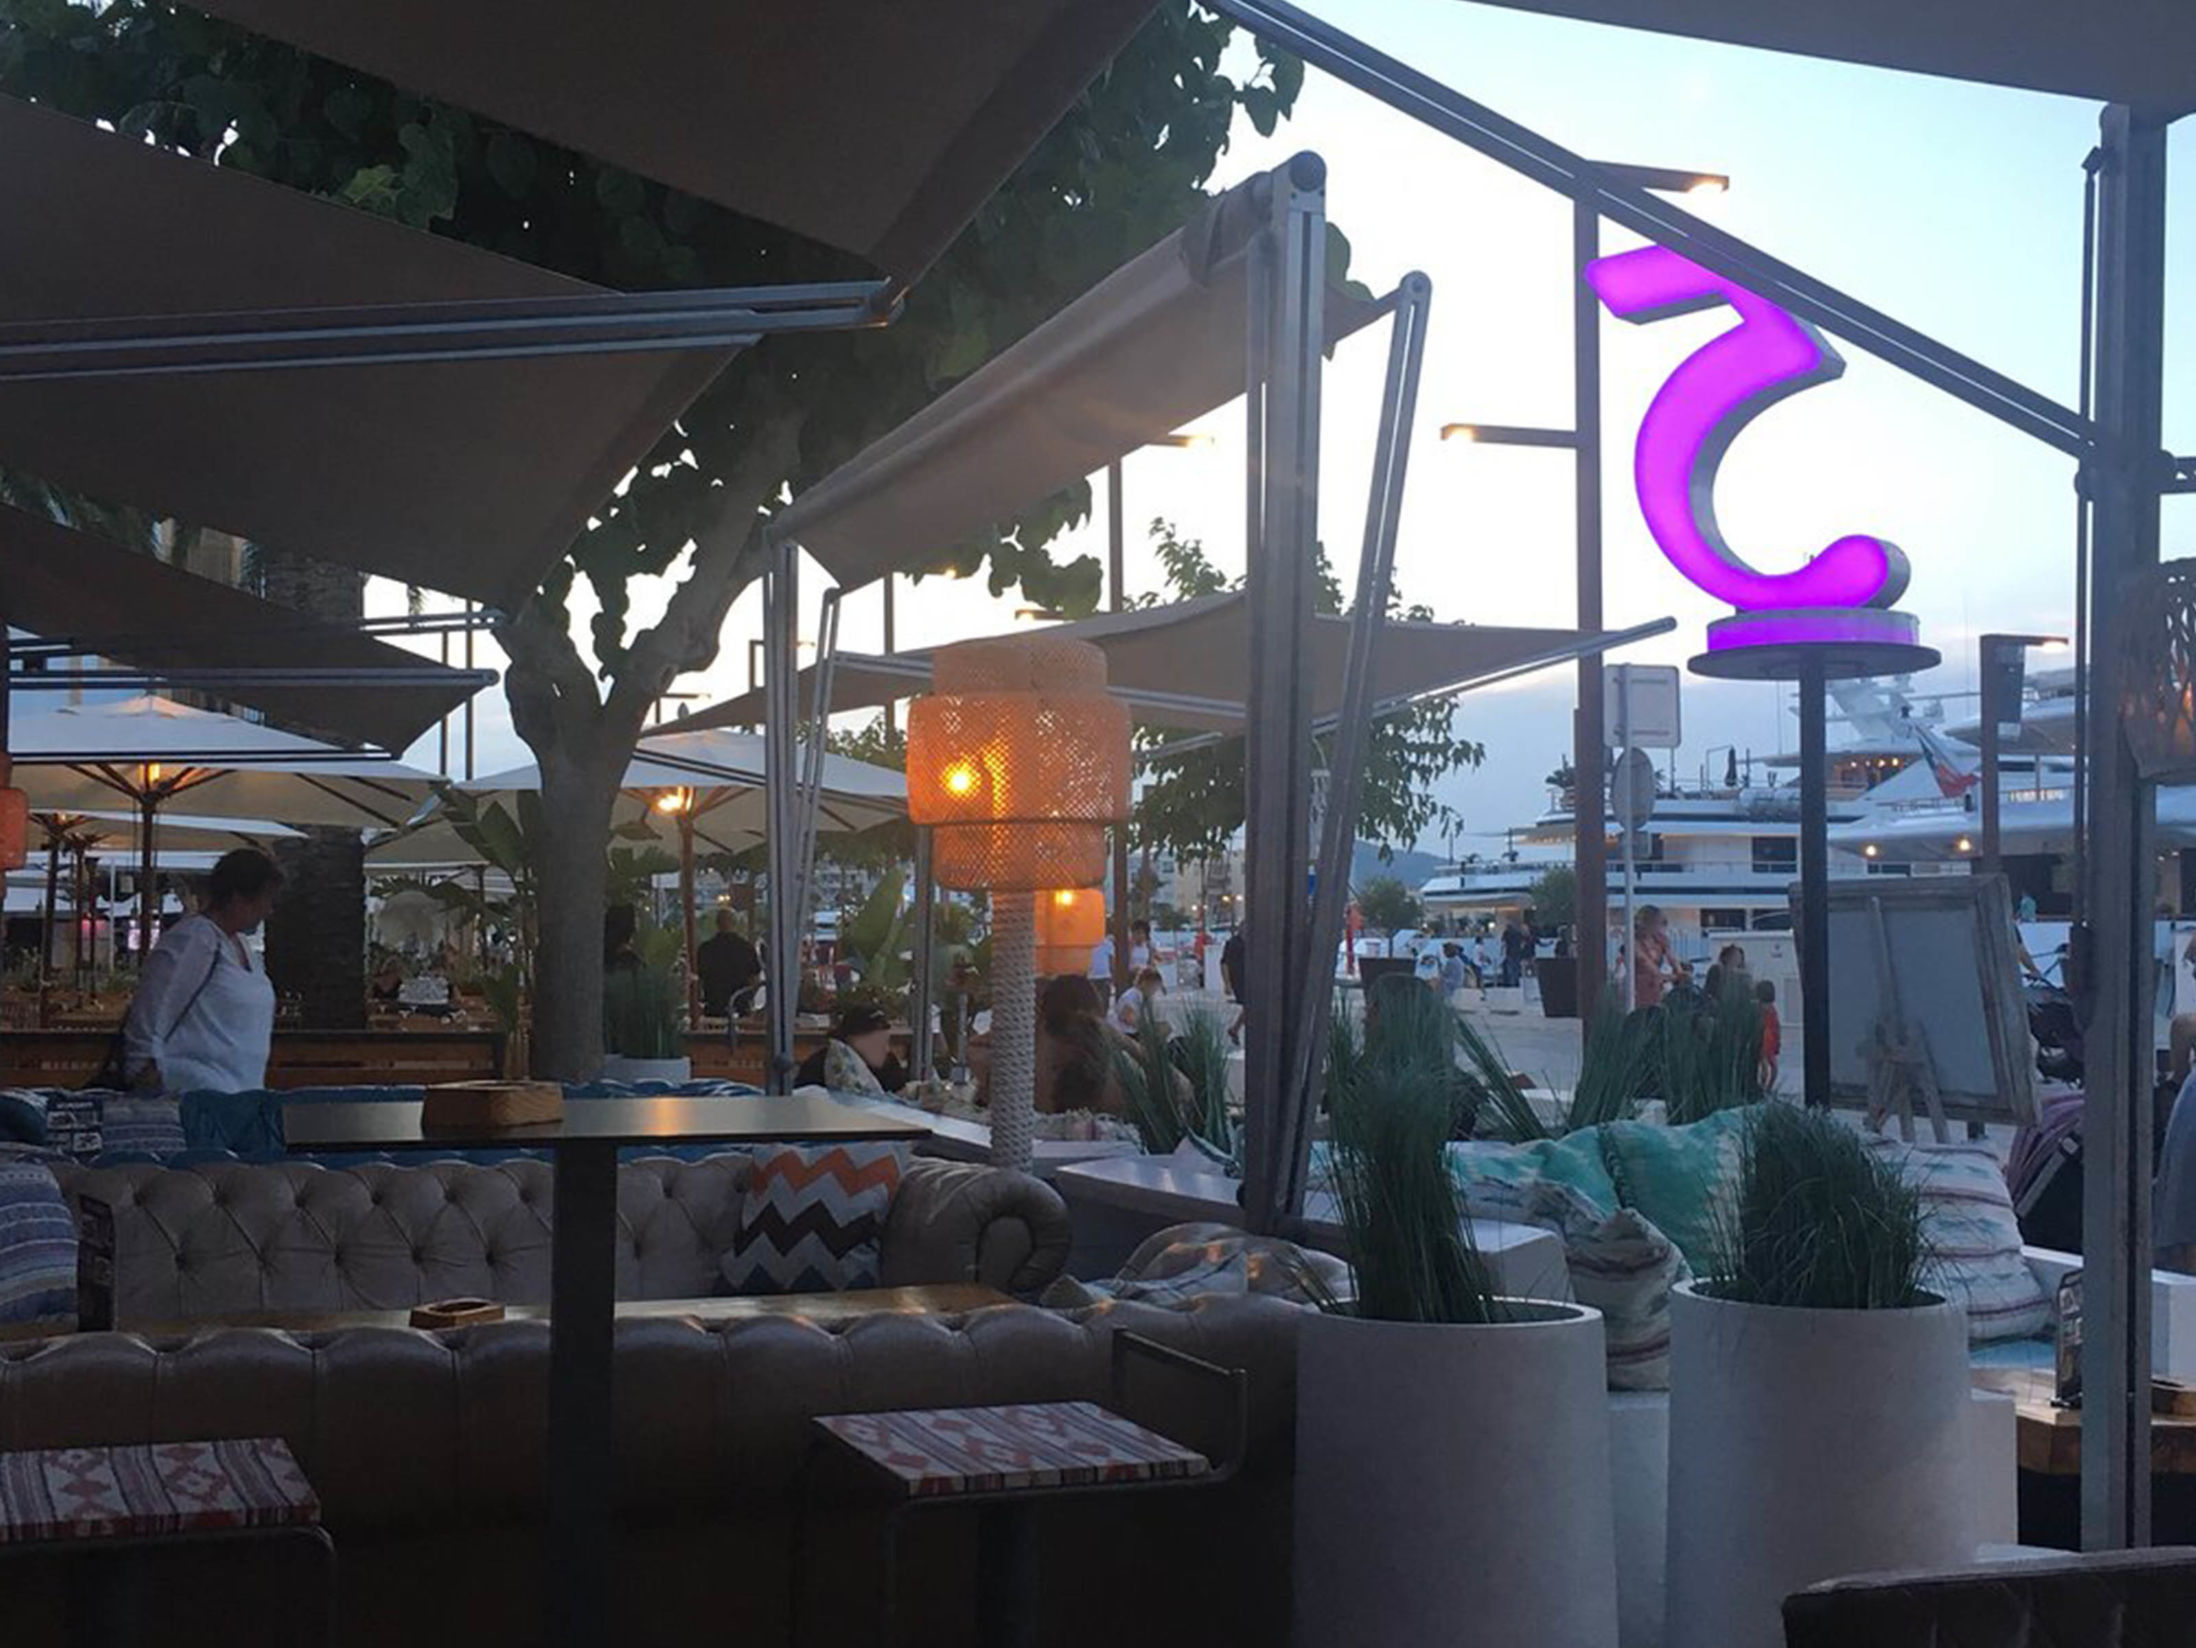 Best Bars in Ibiza - Number 5